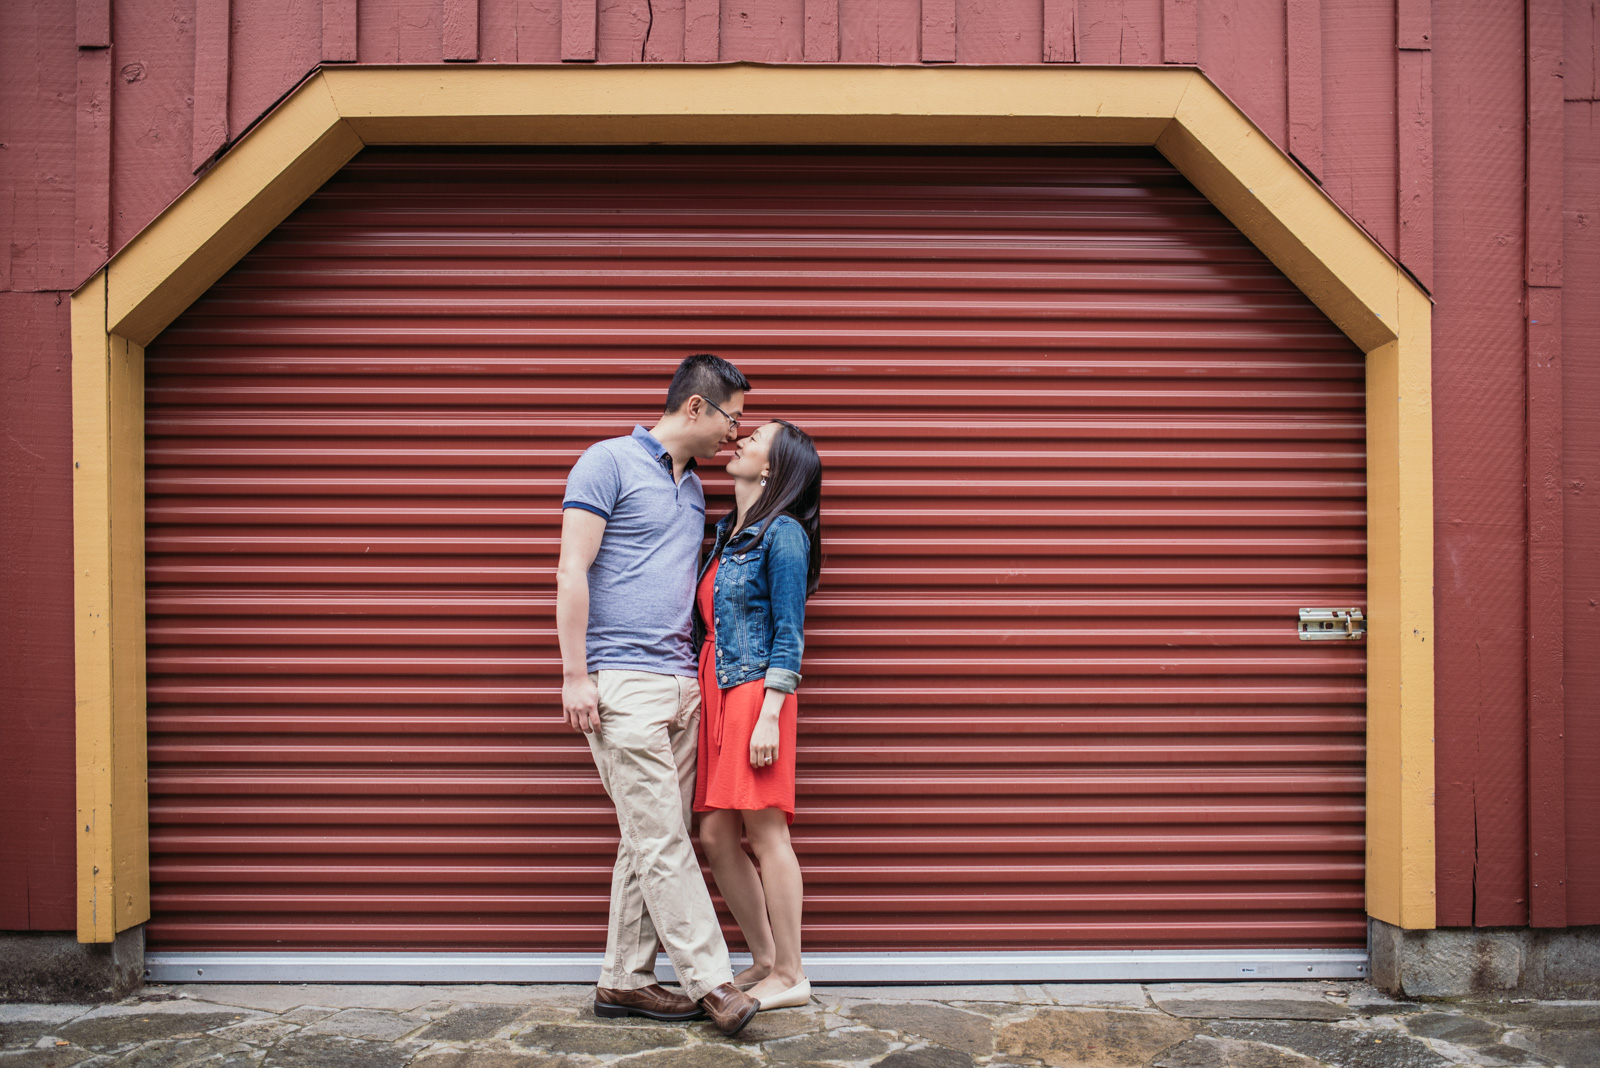 vancouver-island-wedding-photographers-fort-langley-engagement-7.jpg